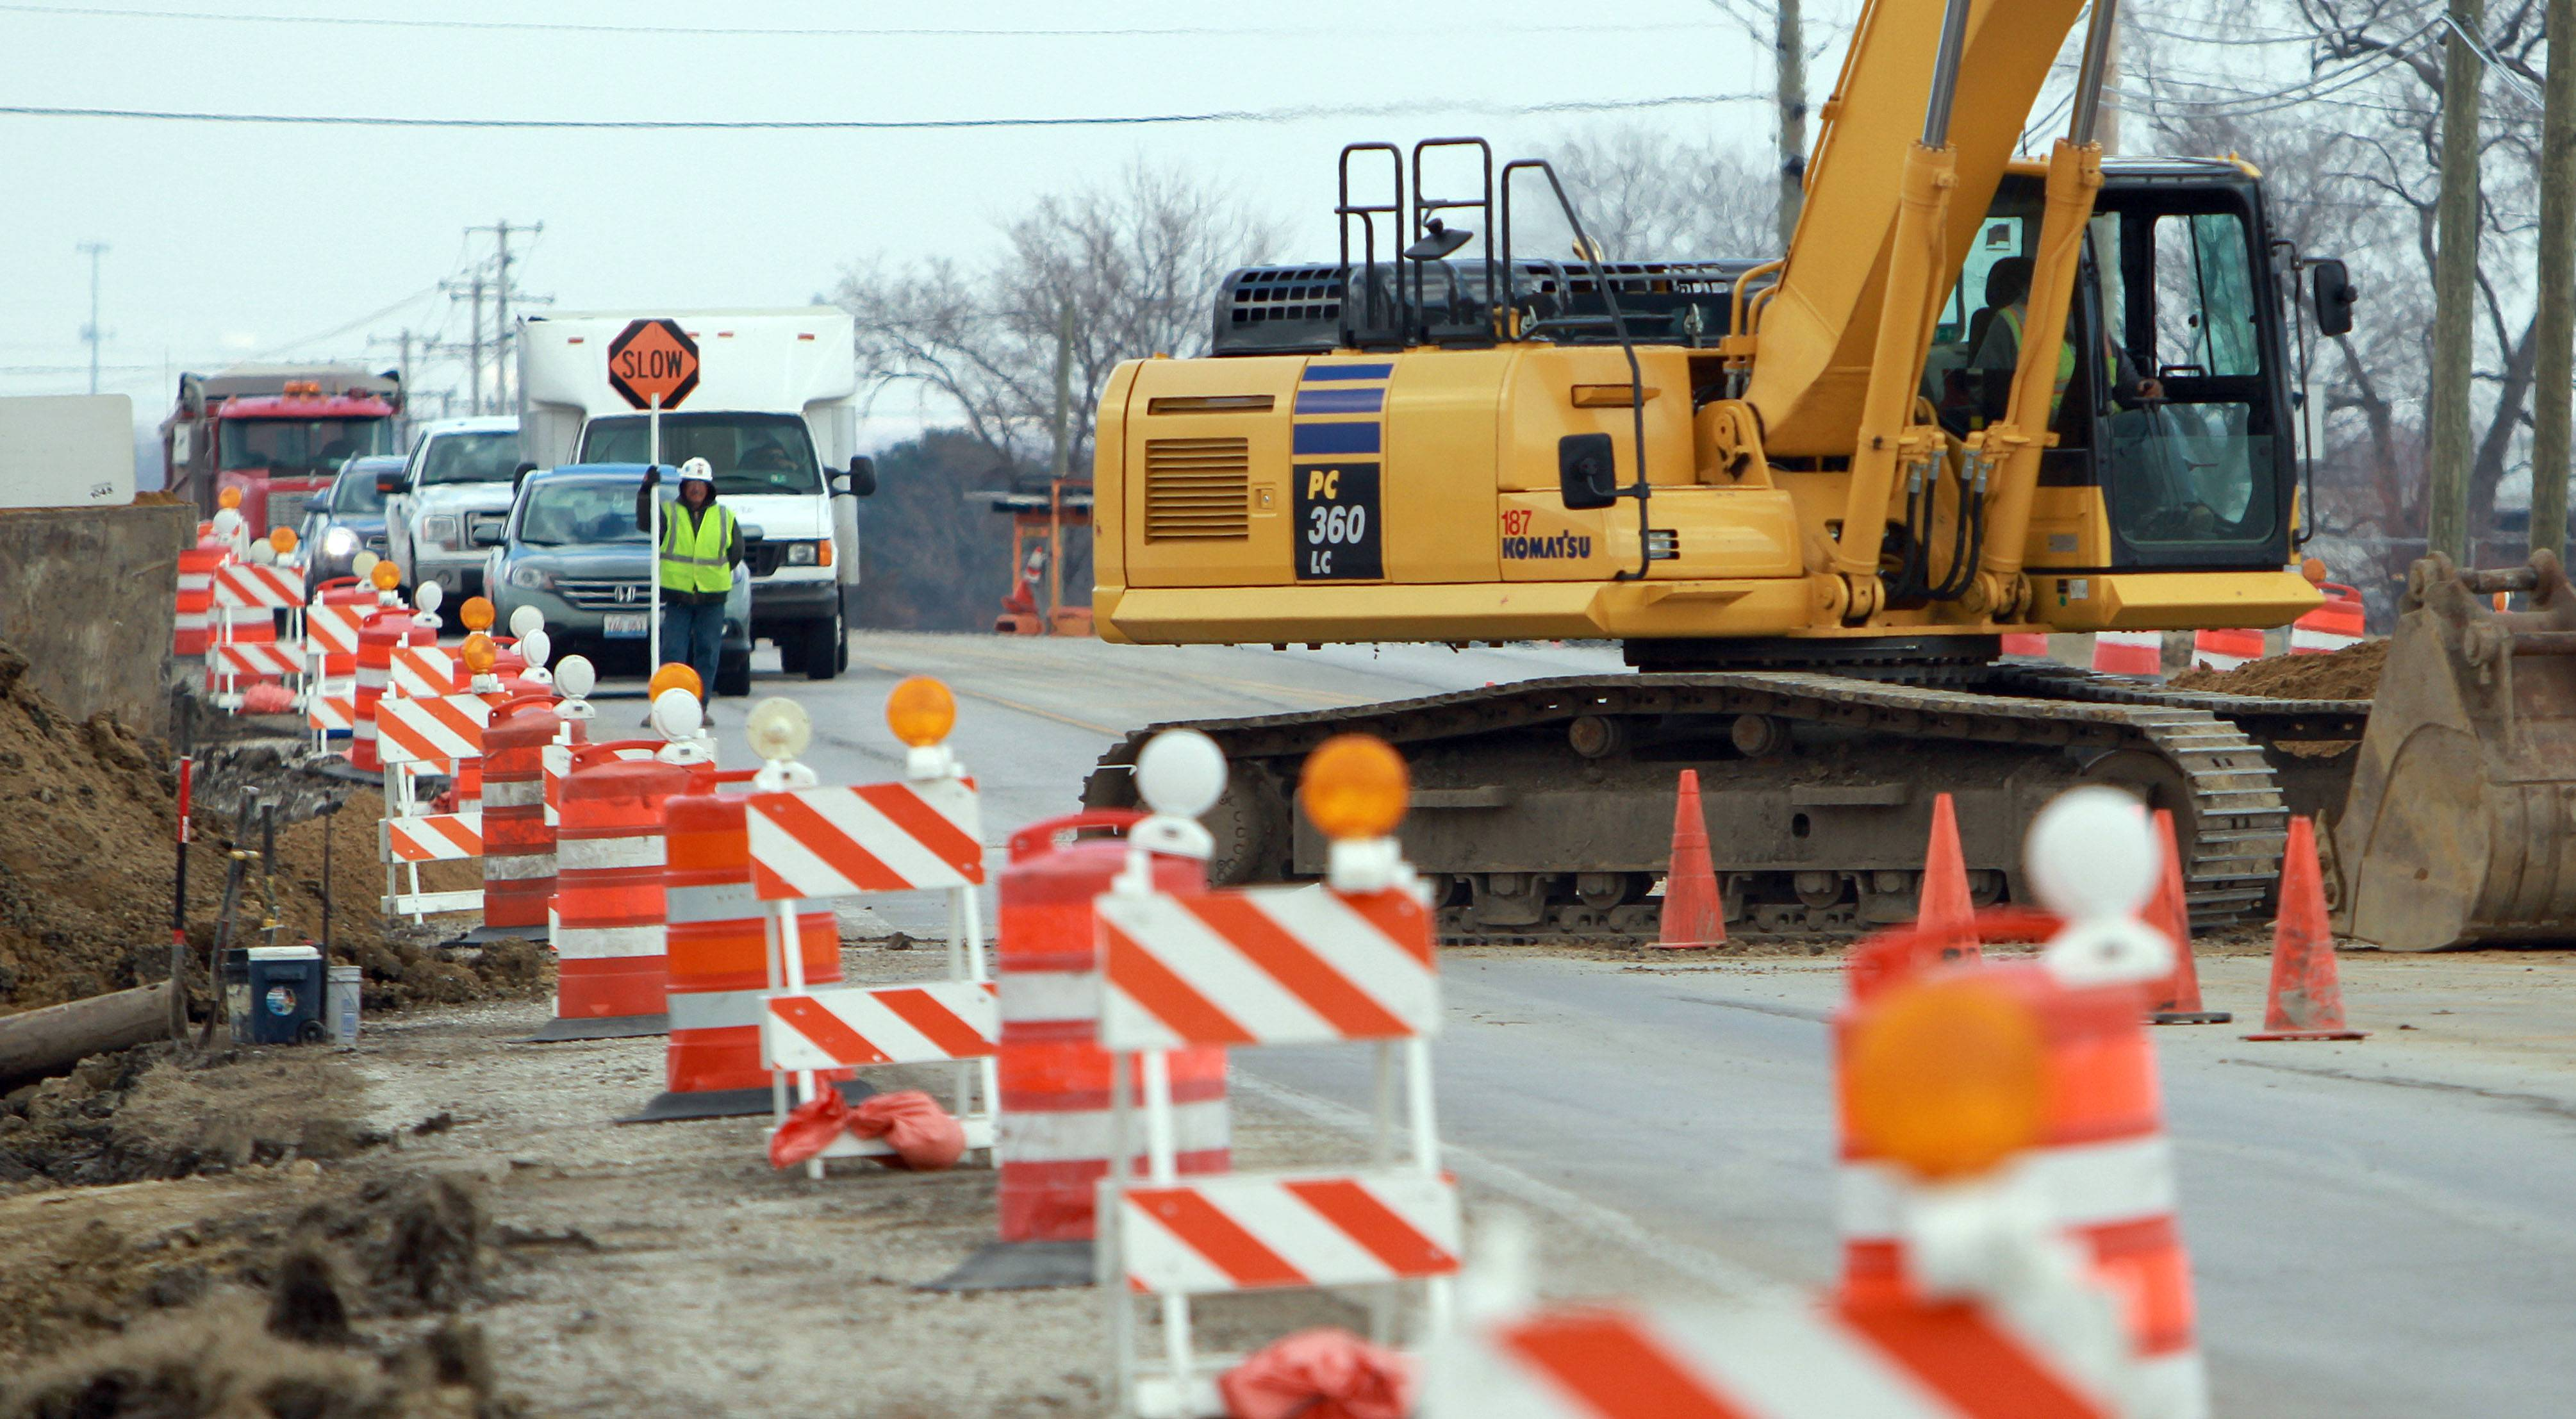 Traffic is stopped in both directions during construction on Peterson Road near Midlothian Road in Libertyville.